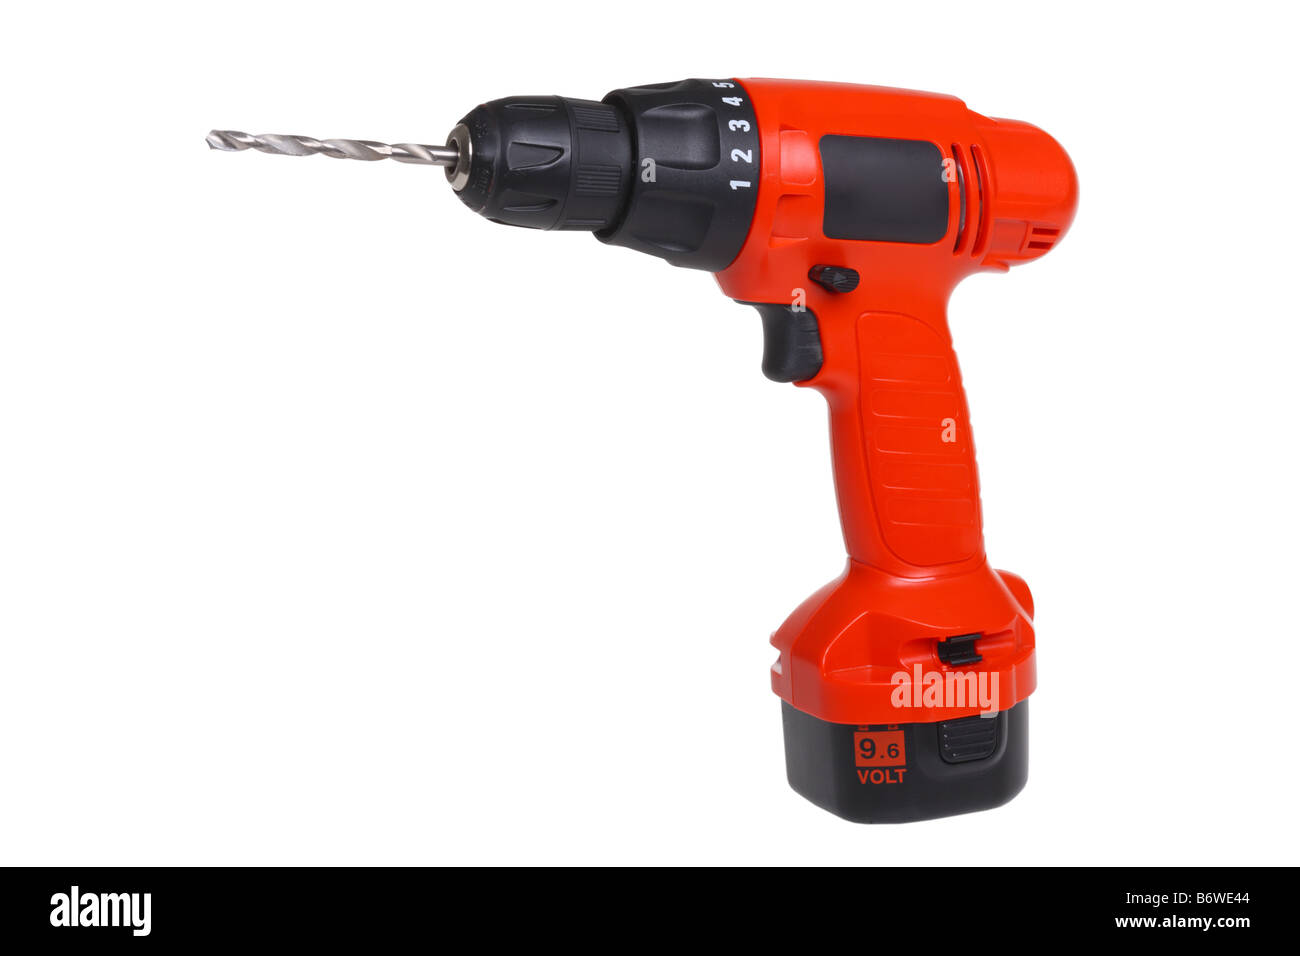 Cordless power drill tool cut out isolated on white background - Stock Image